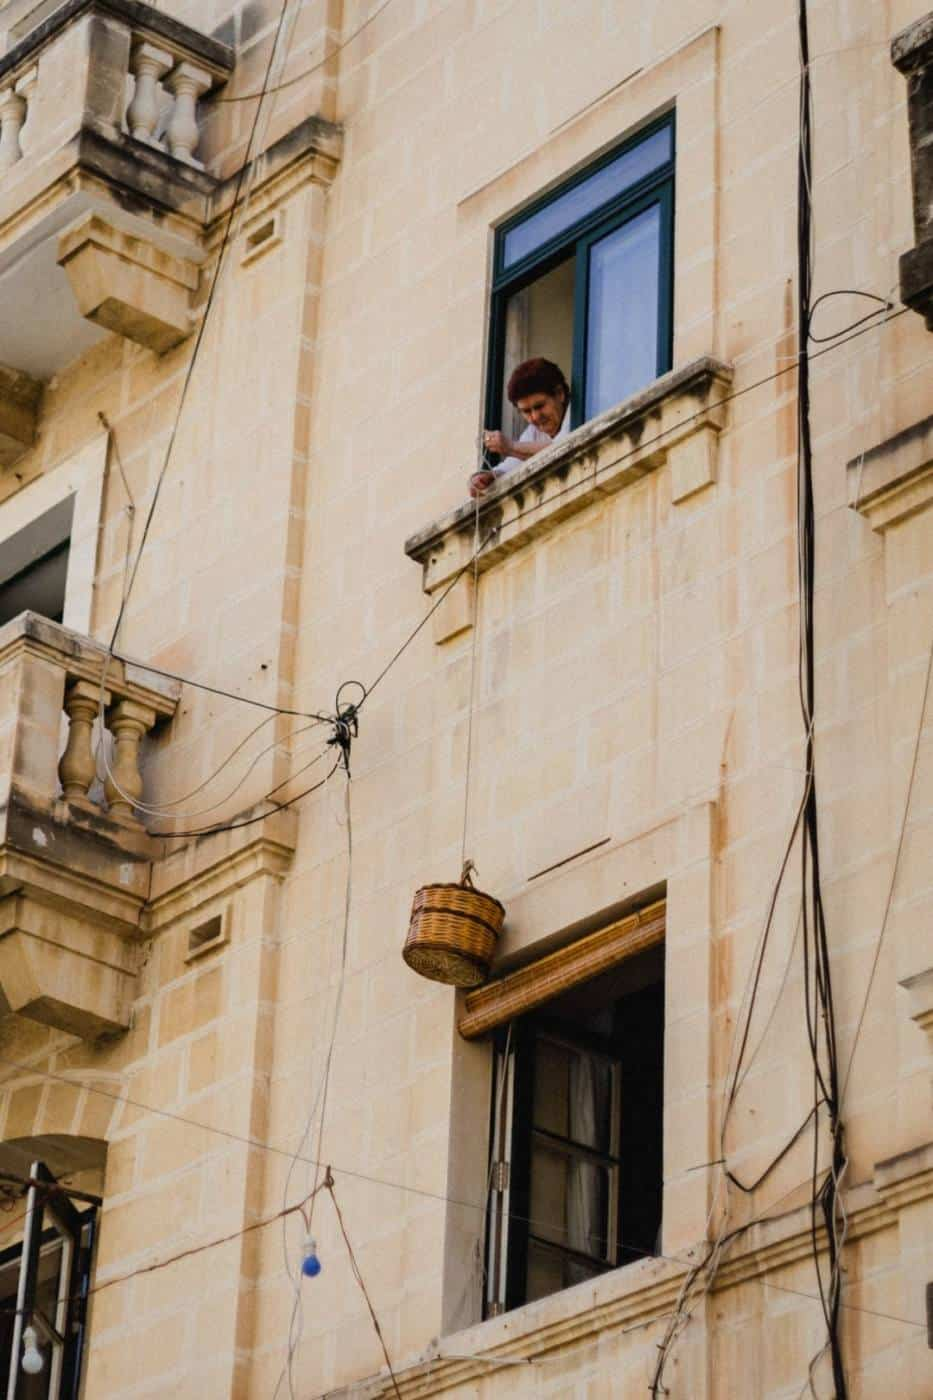 Maltese lady buying bread from her window in Valletta